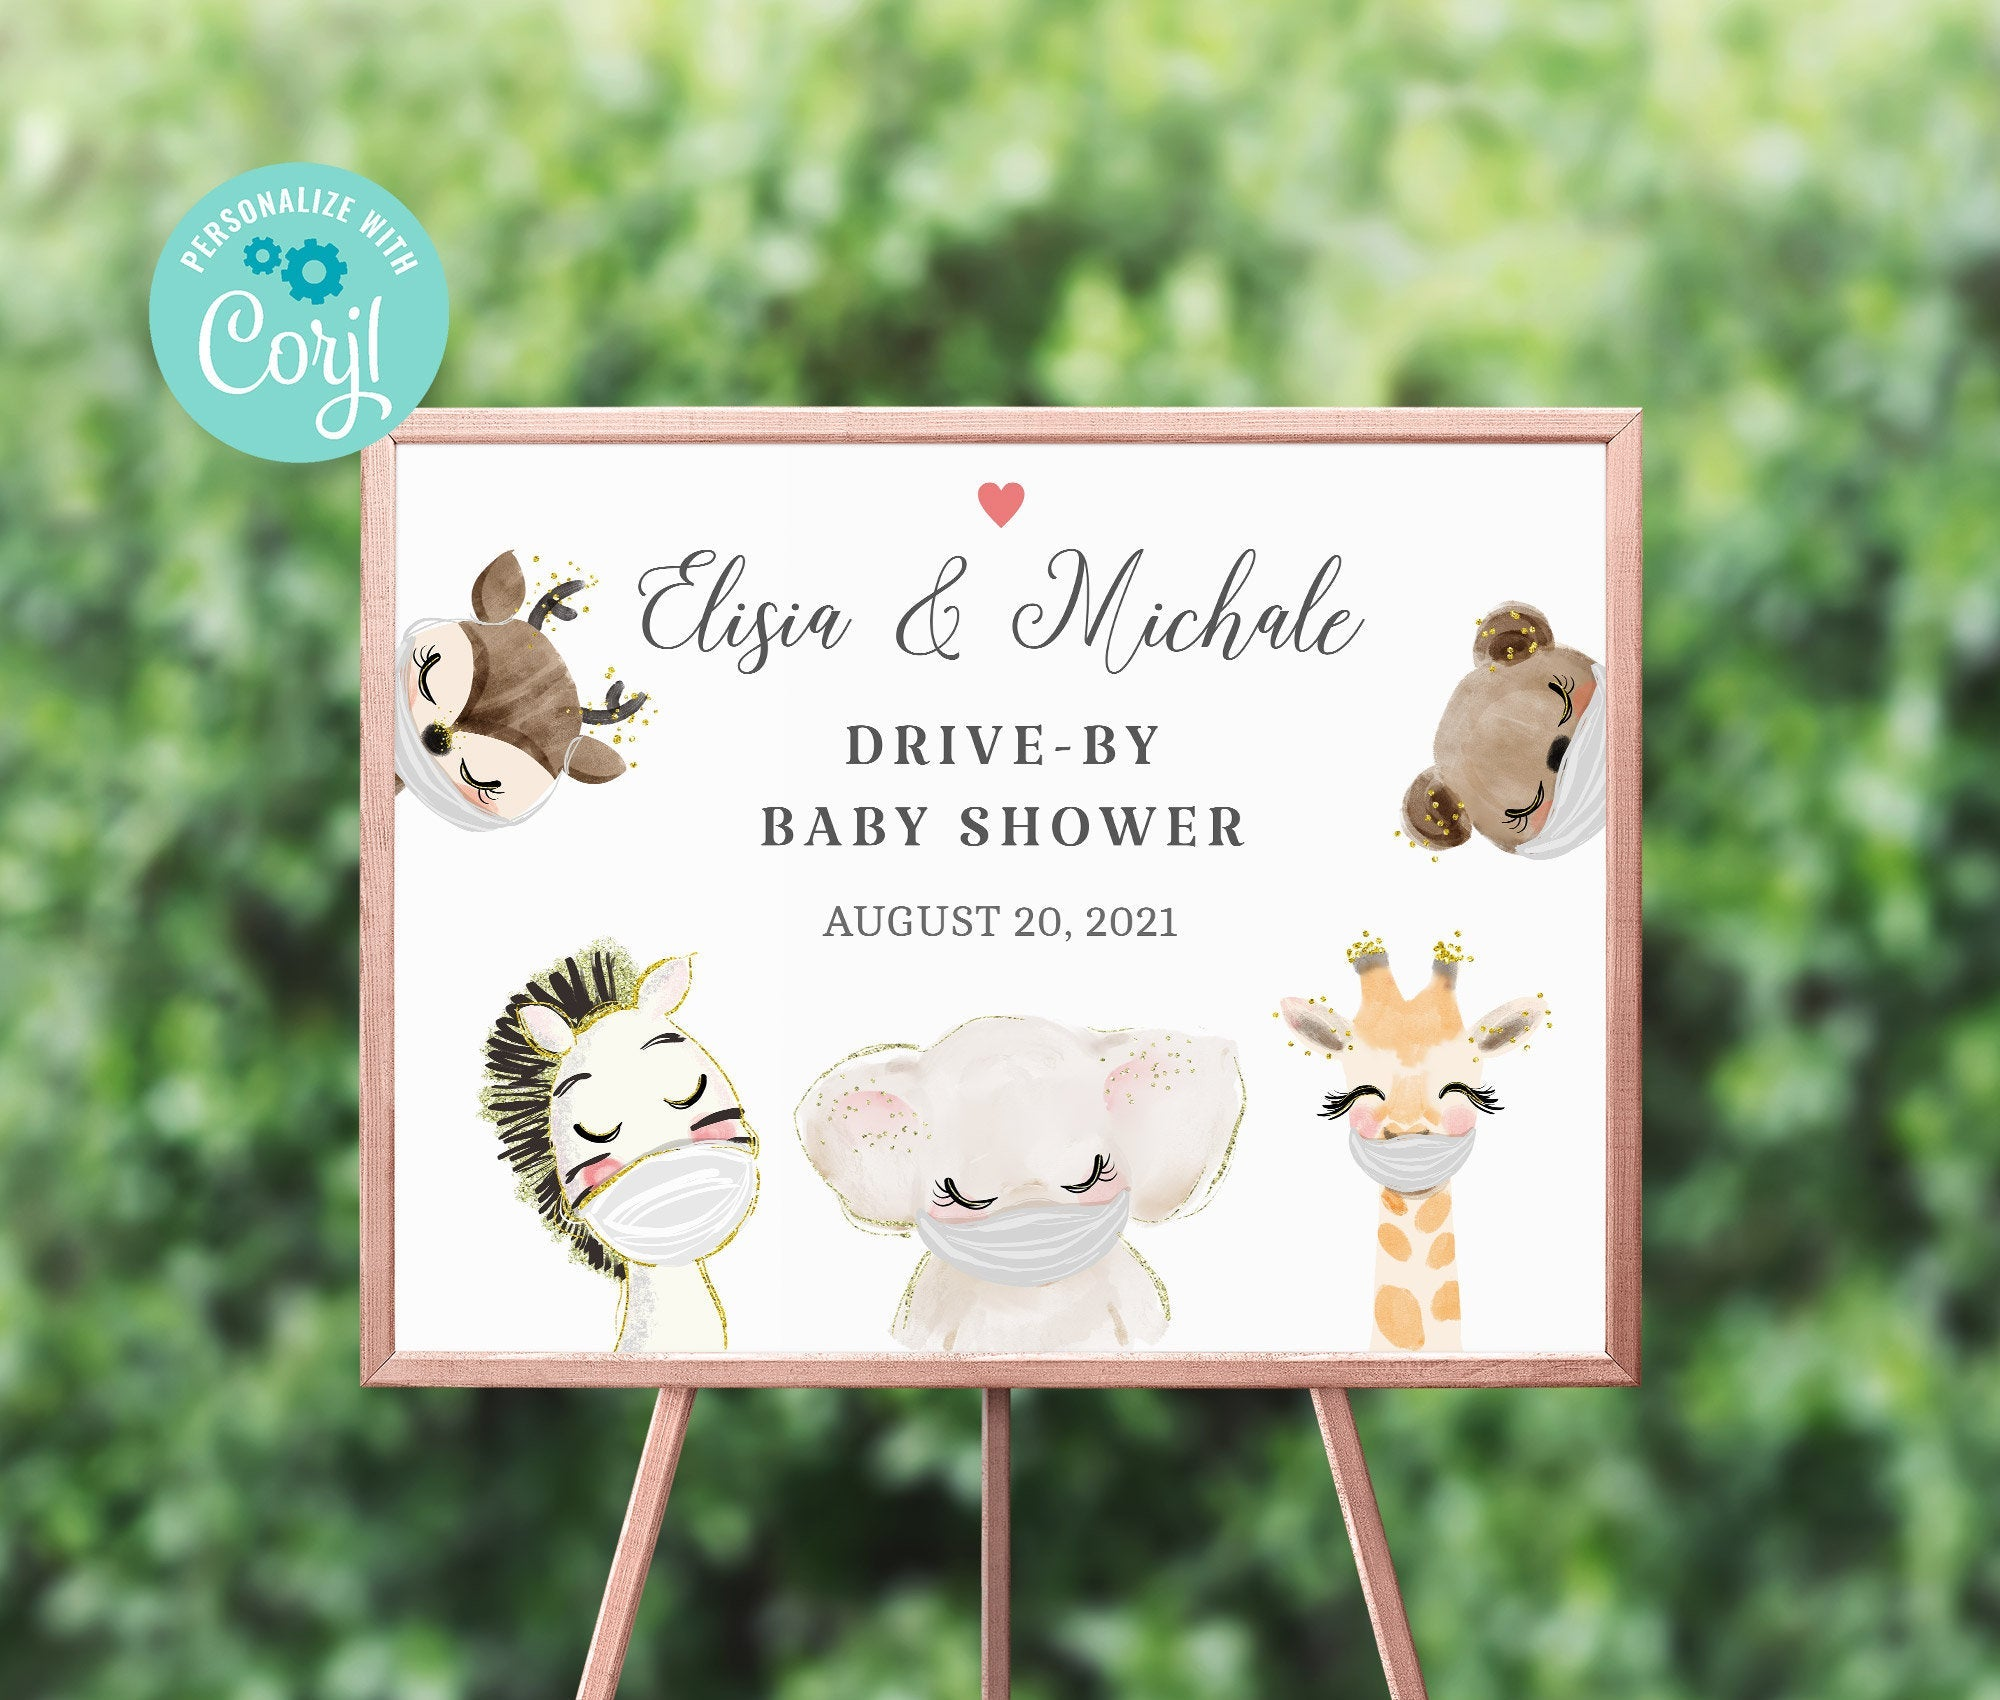 Drive By Baby Shower Welcome Sign Printable • Editable Sign • Quarantine Baby Animals • Social Distancing Party - Instant Download BS3601